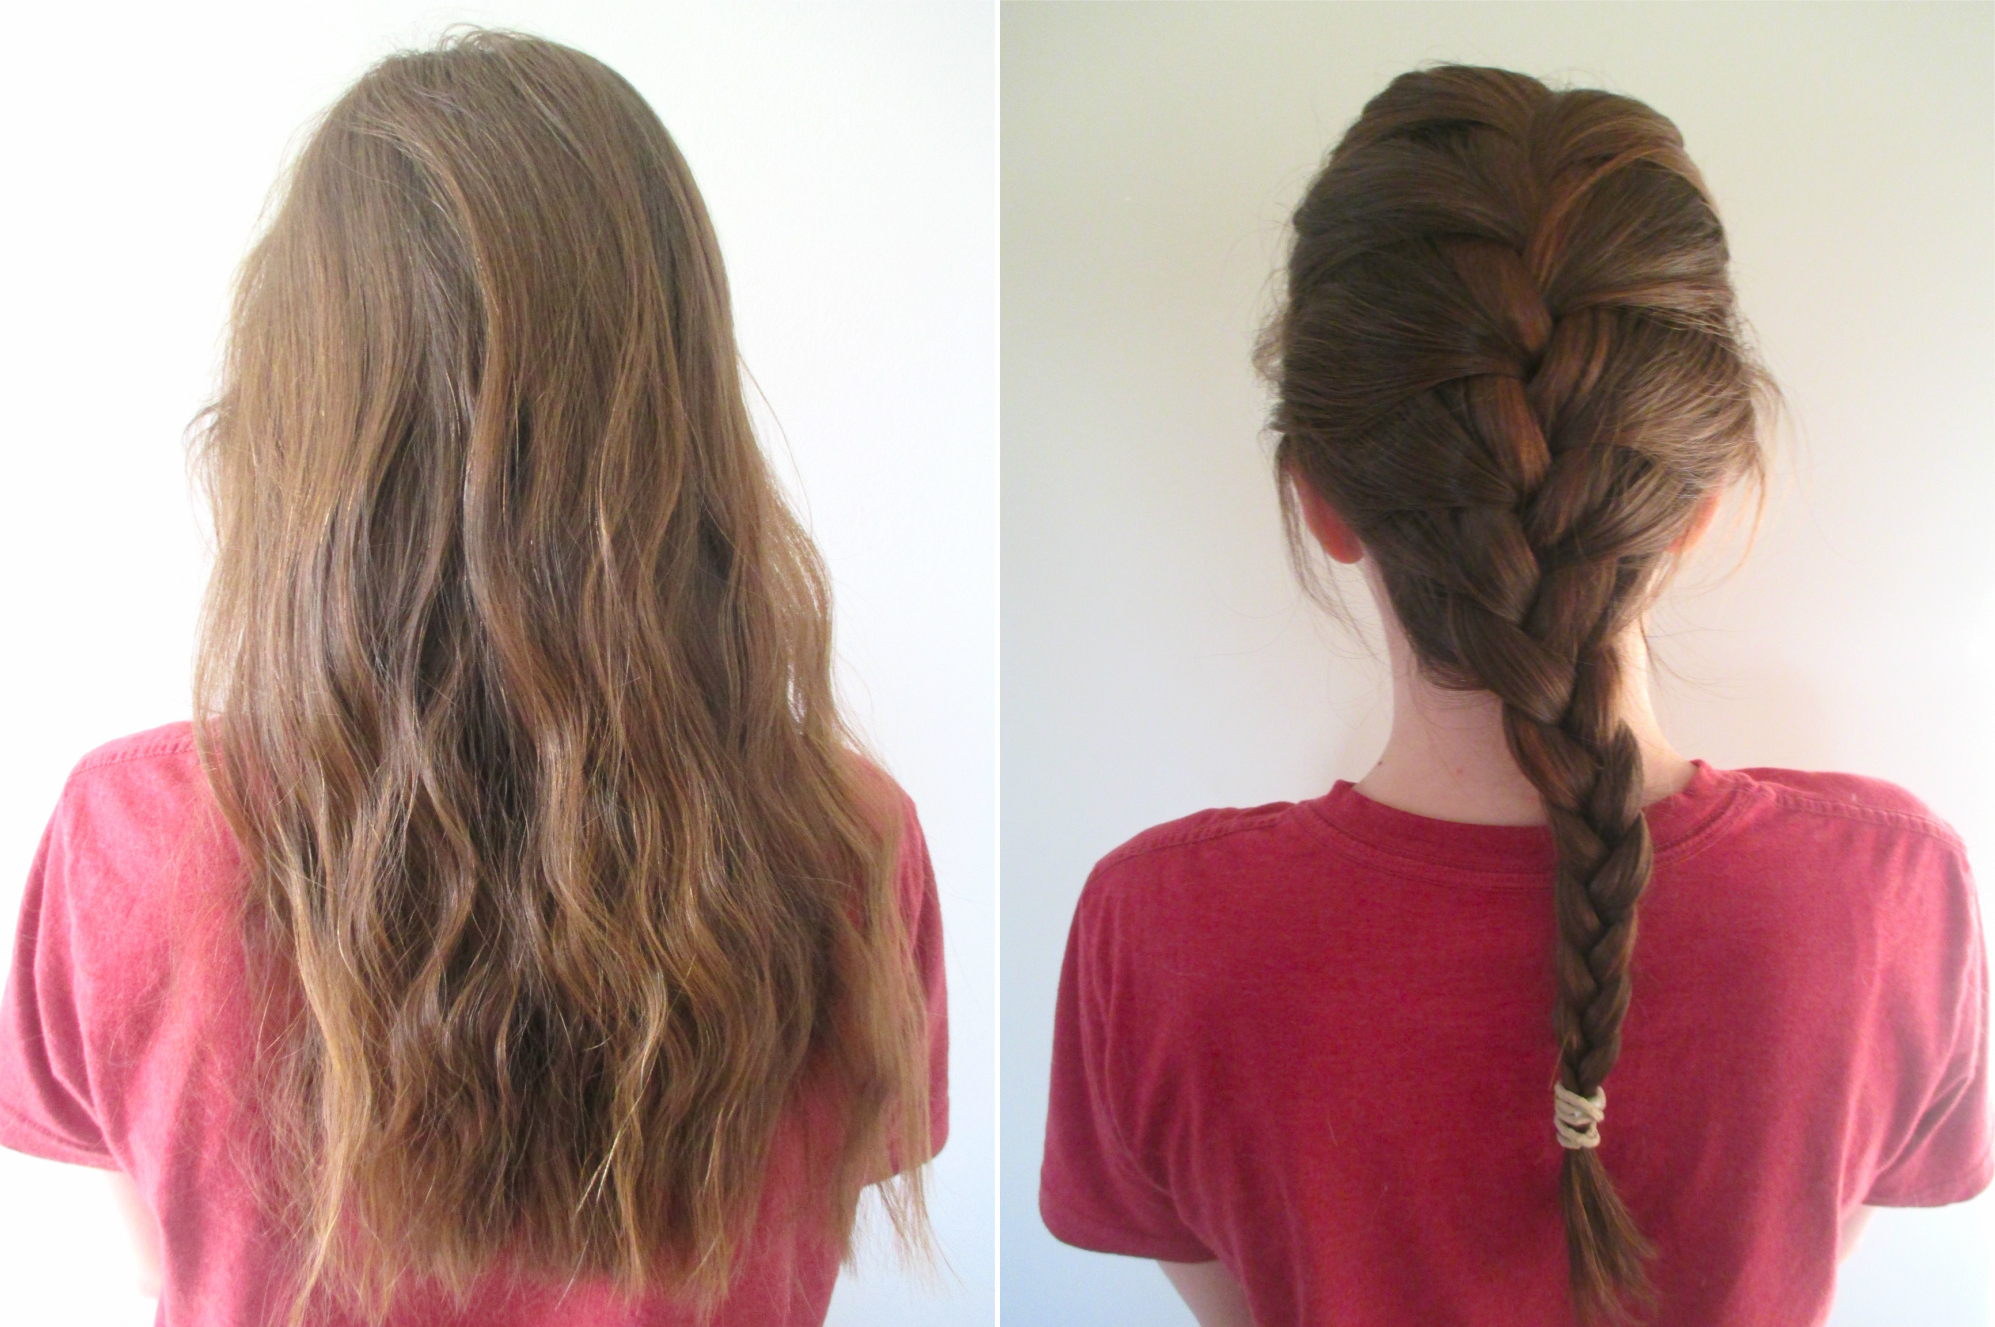 Current Loose 4 Strand Rope Braid Hairstyles In How To Get Wavy Hair Overnight, Broken Down4 Different (View 6 of 20)